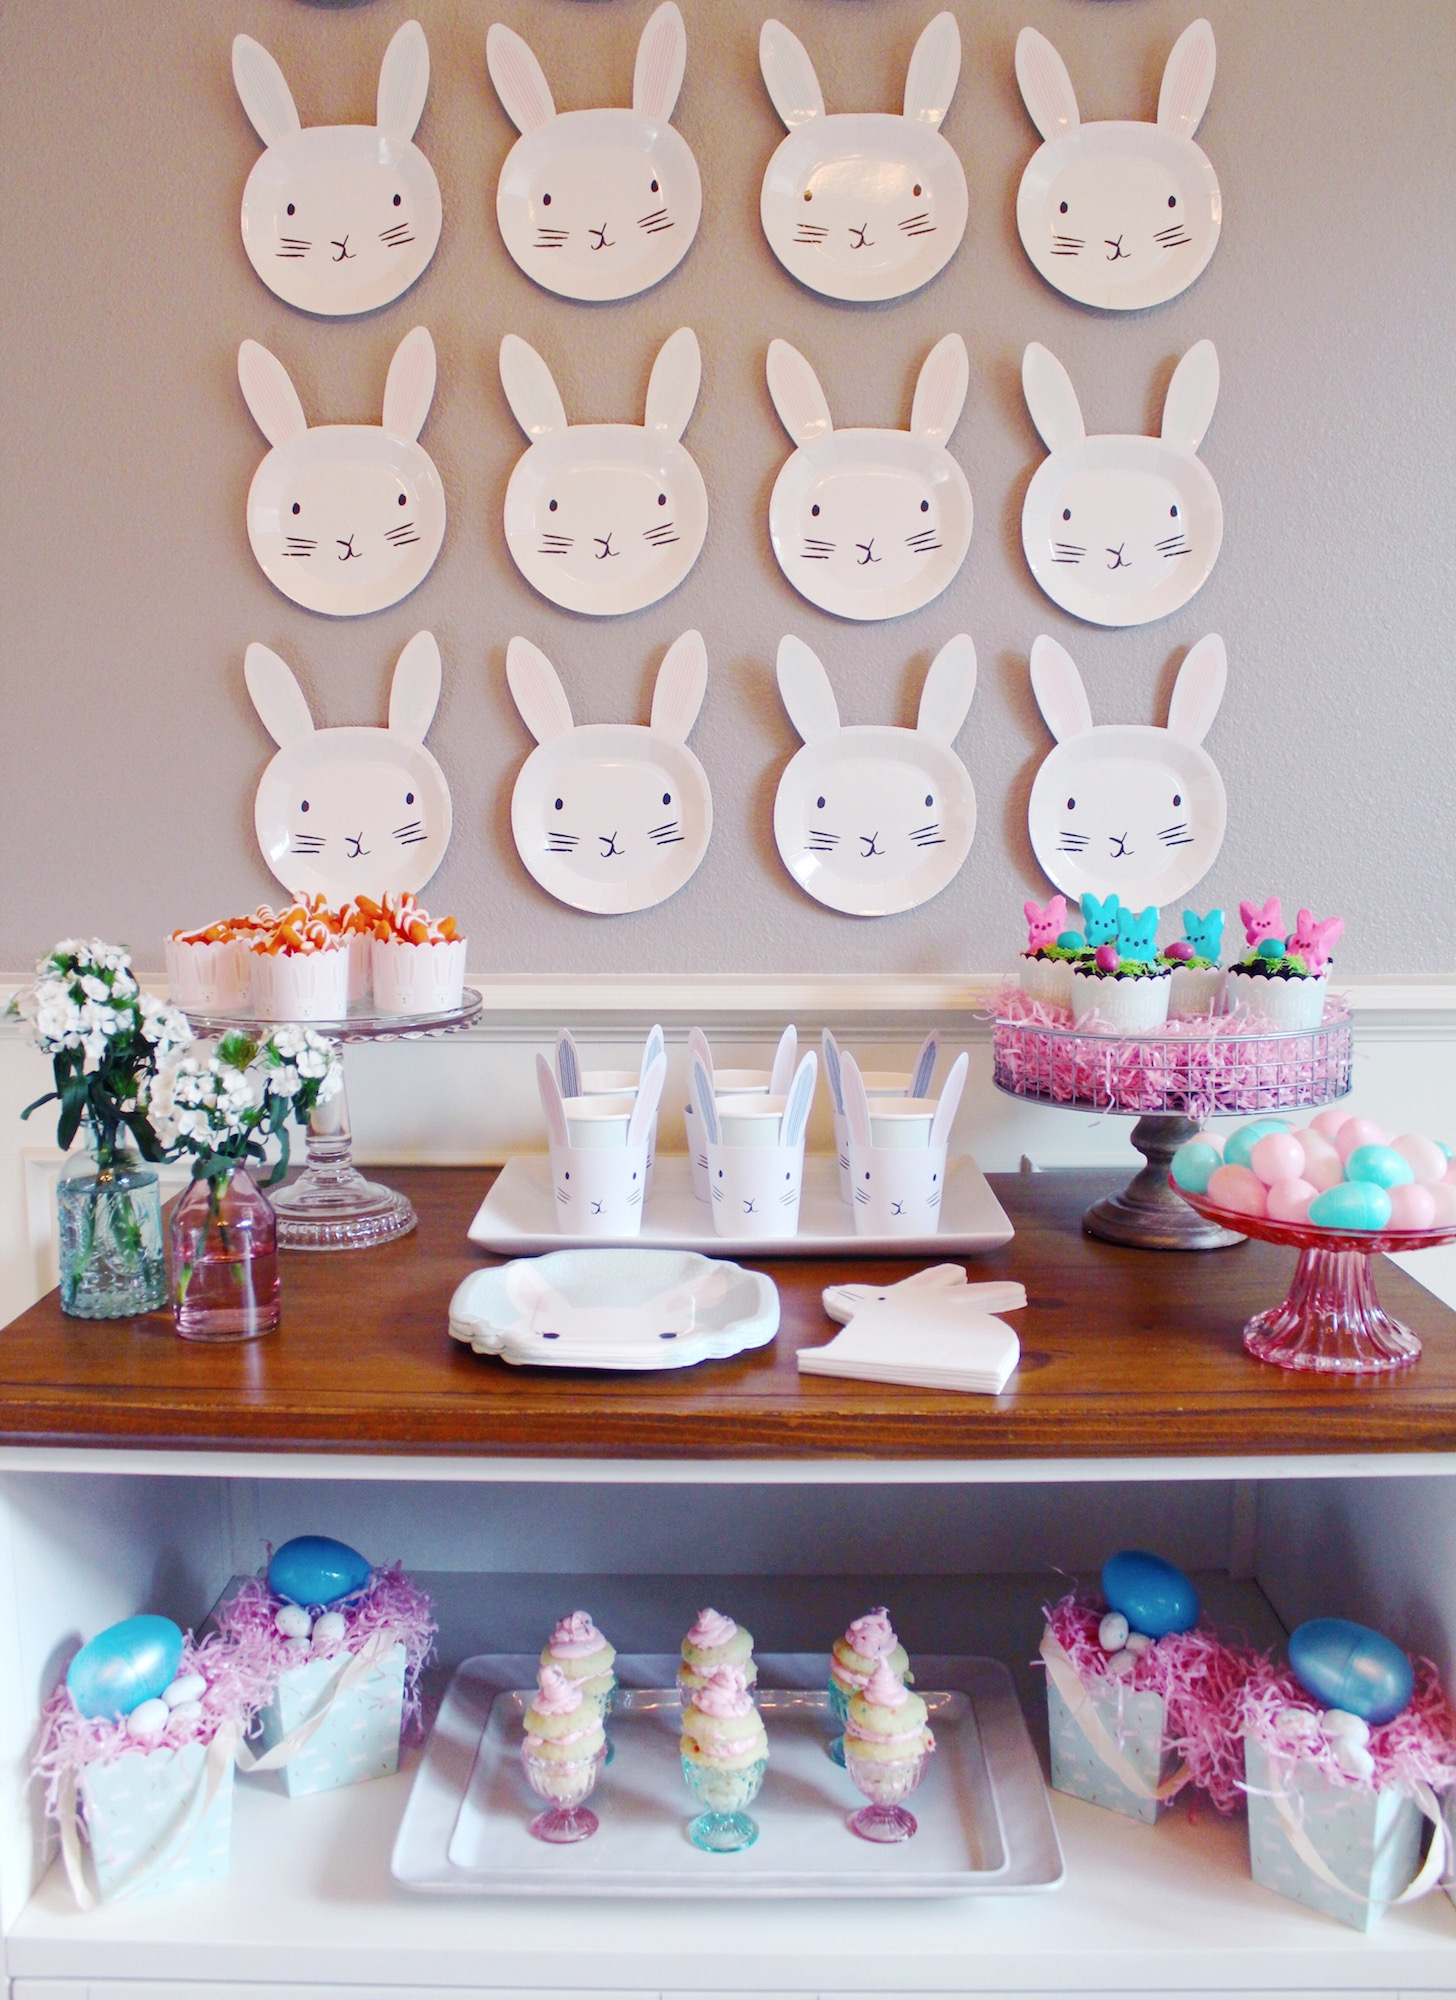 Spring Easter Party Decor Ideas_Bunny Theme_Design Organize Party.JPG